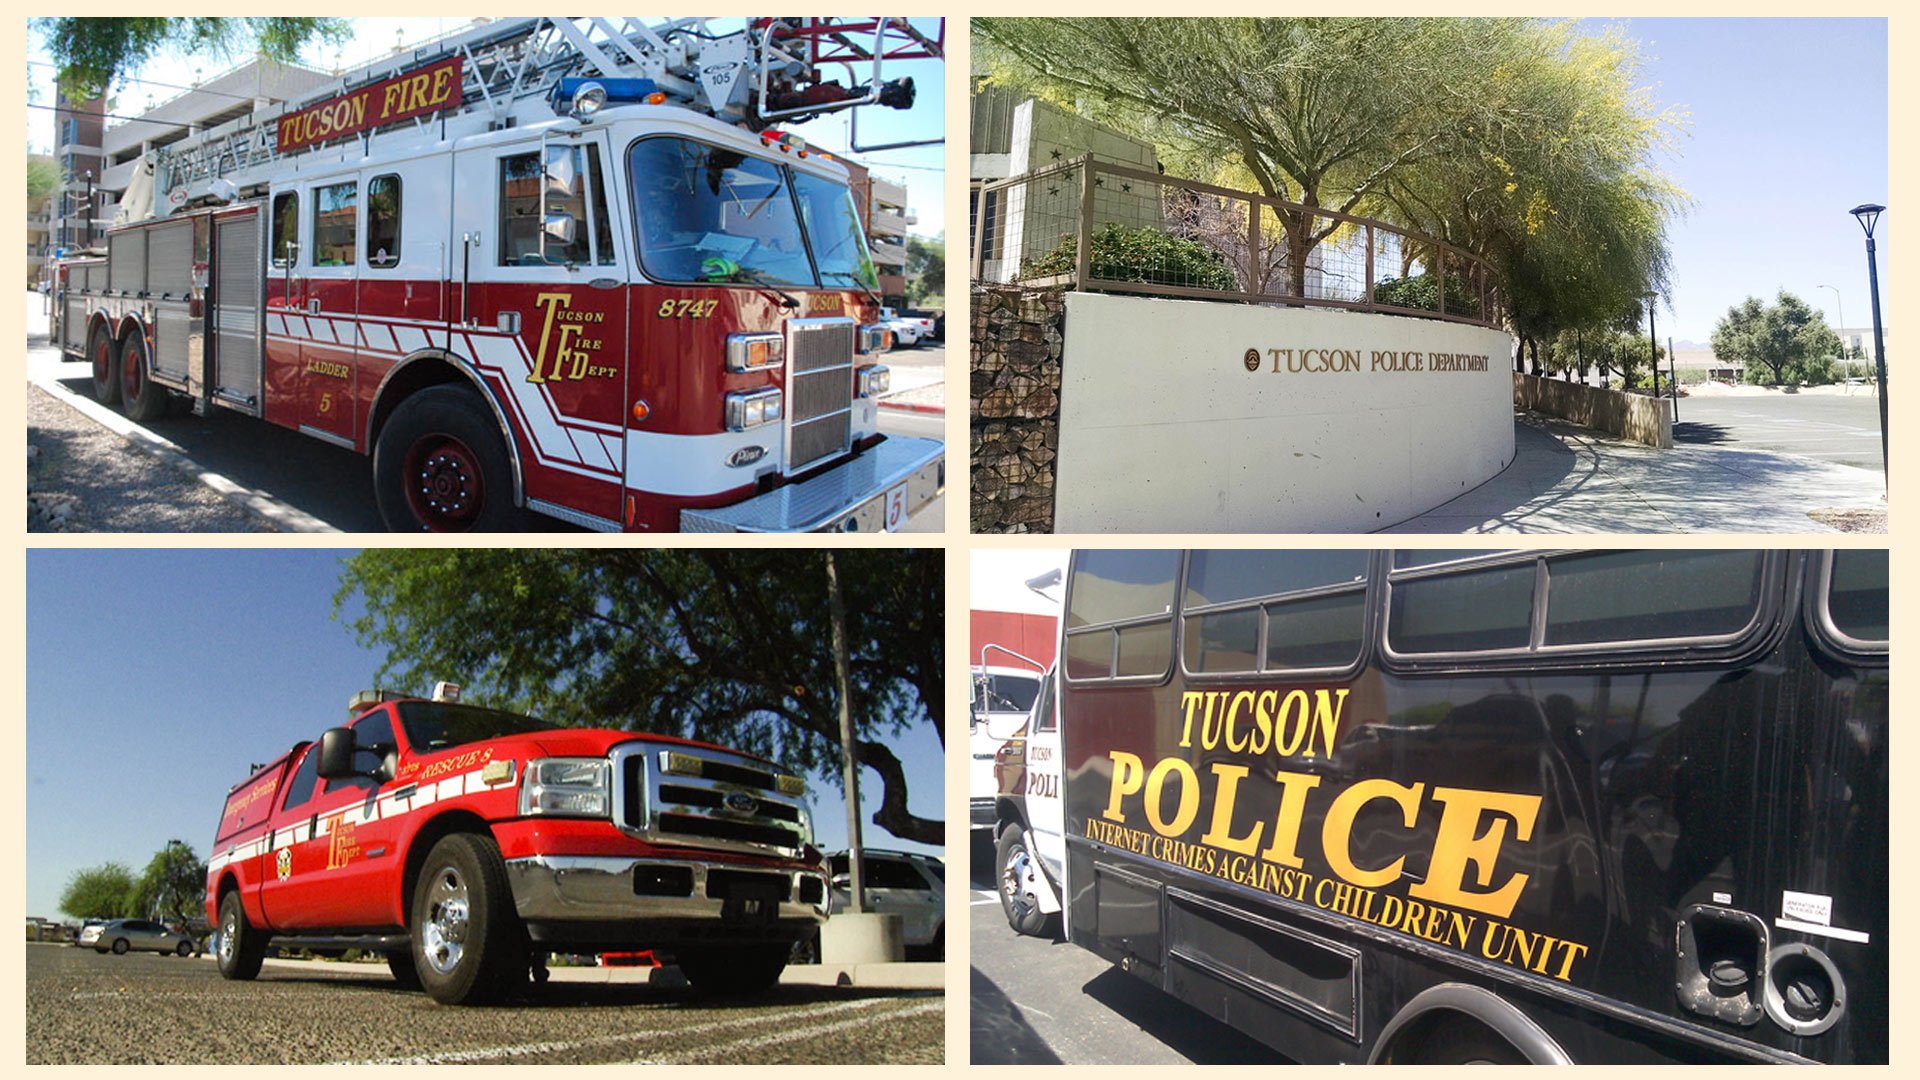 Money from the proposed sales tax would feed the budgets of Tucson police and fire departments.